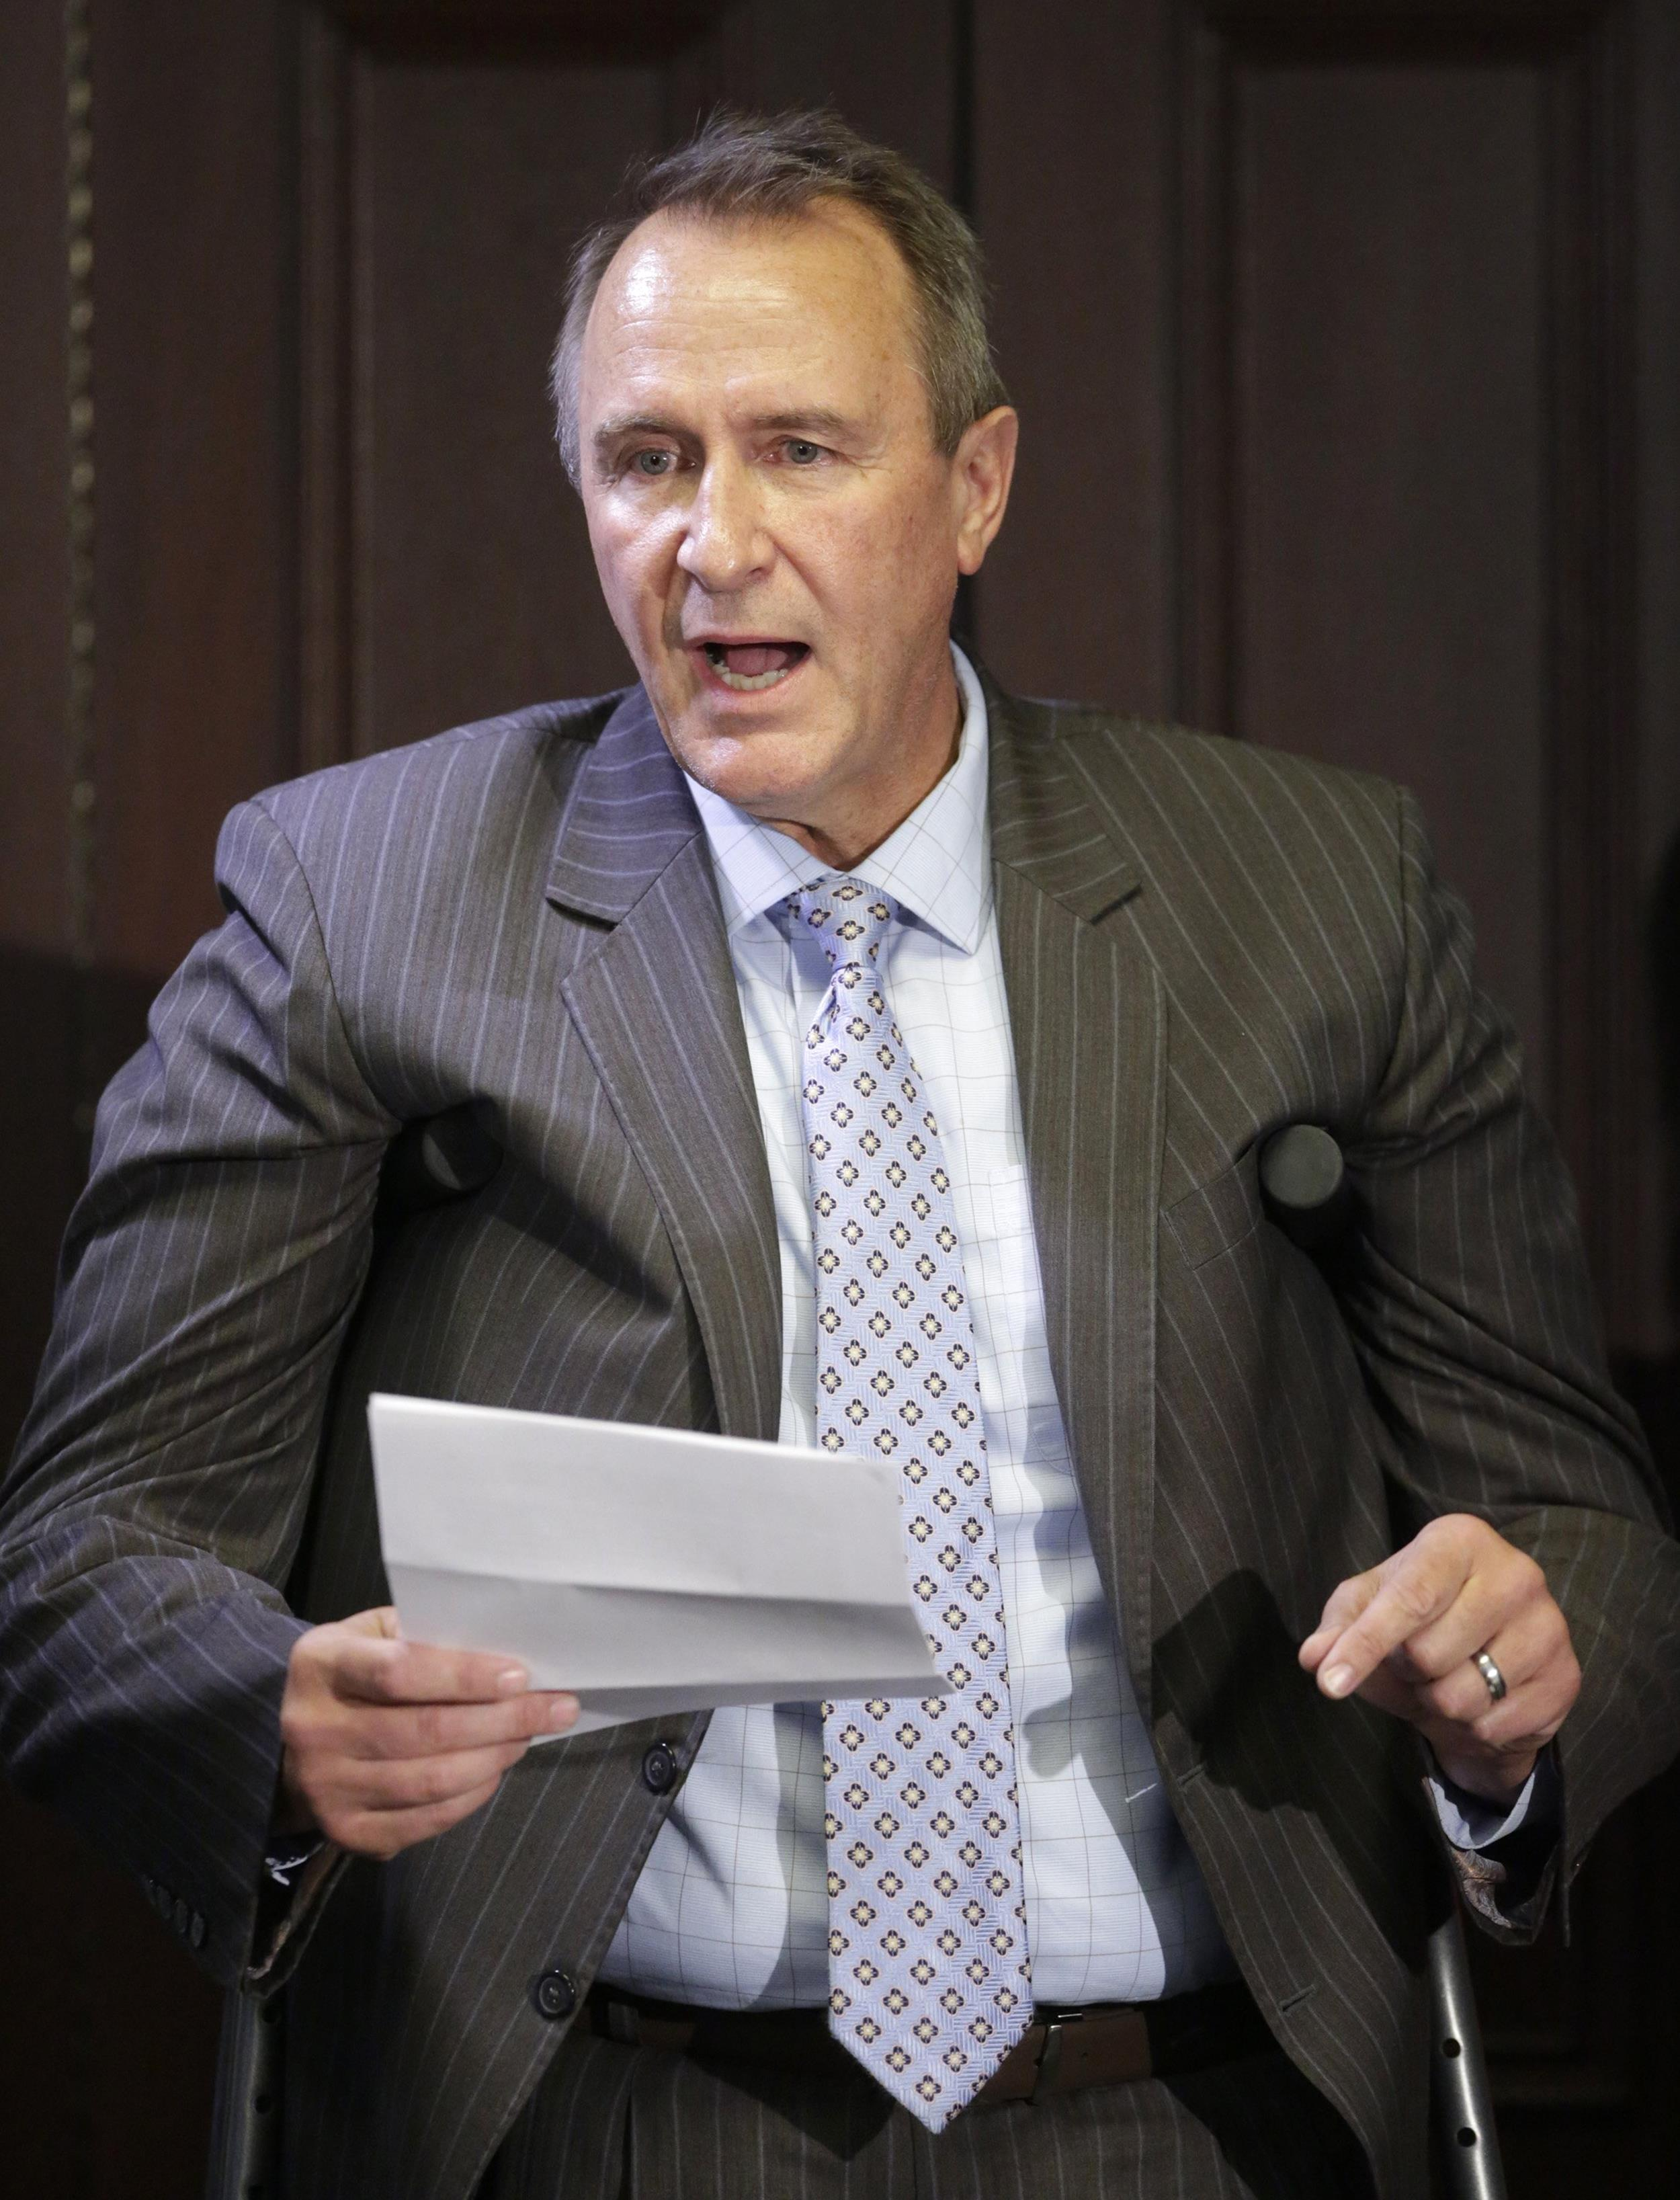 Two Former Attorneys General in Utah Are Charged With